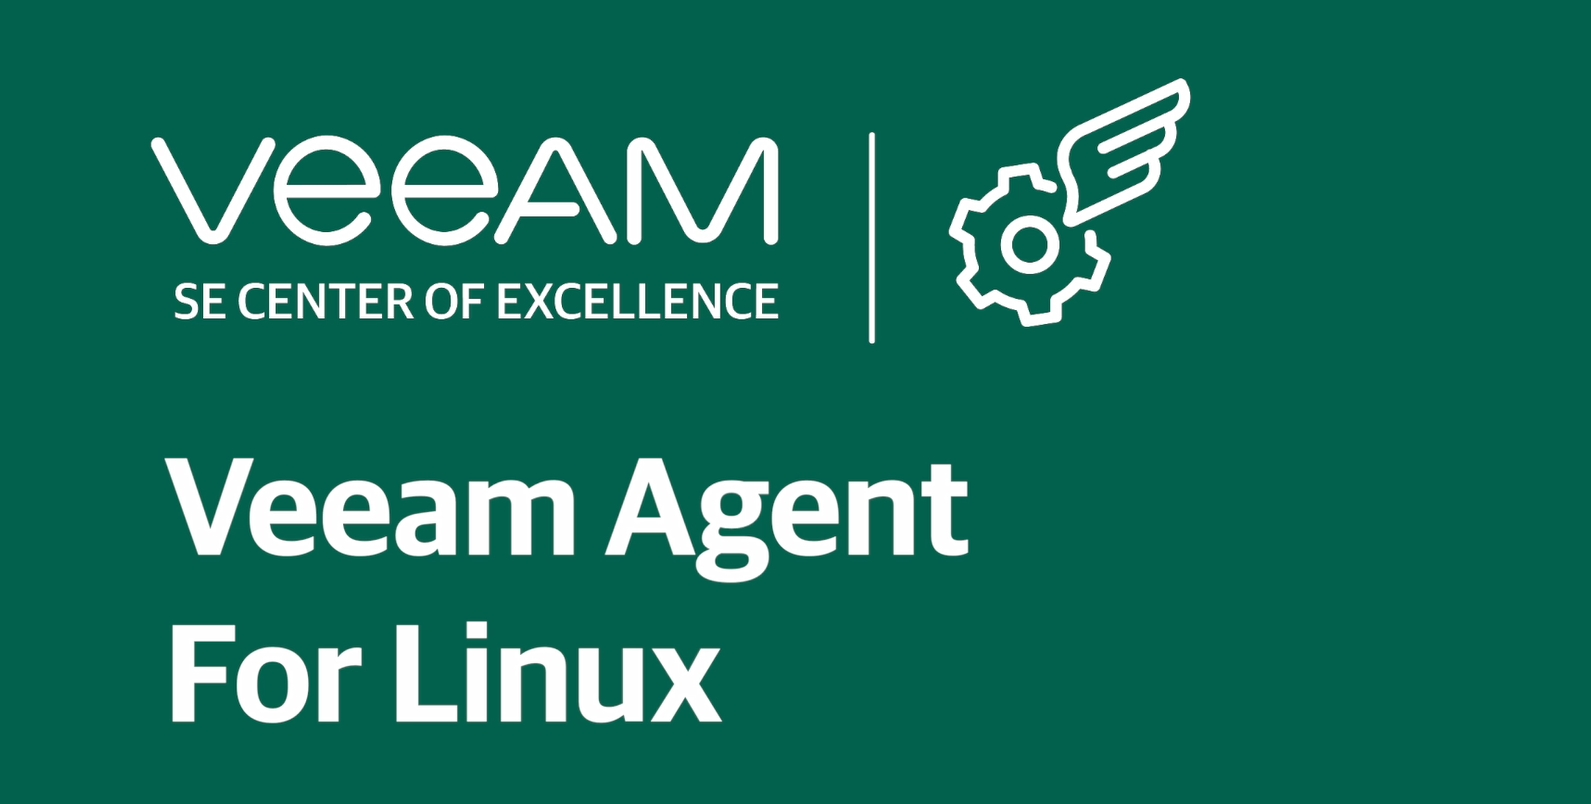 How to organize, automate and deploy Veeam Agent for Linux